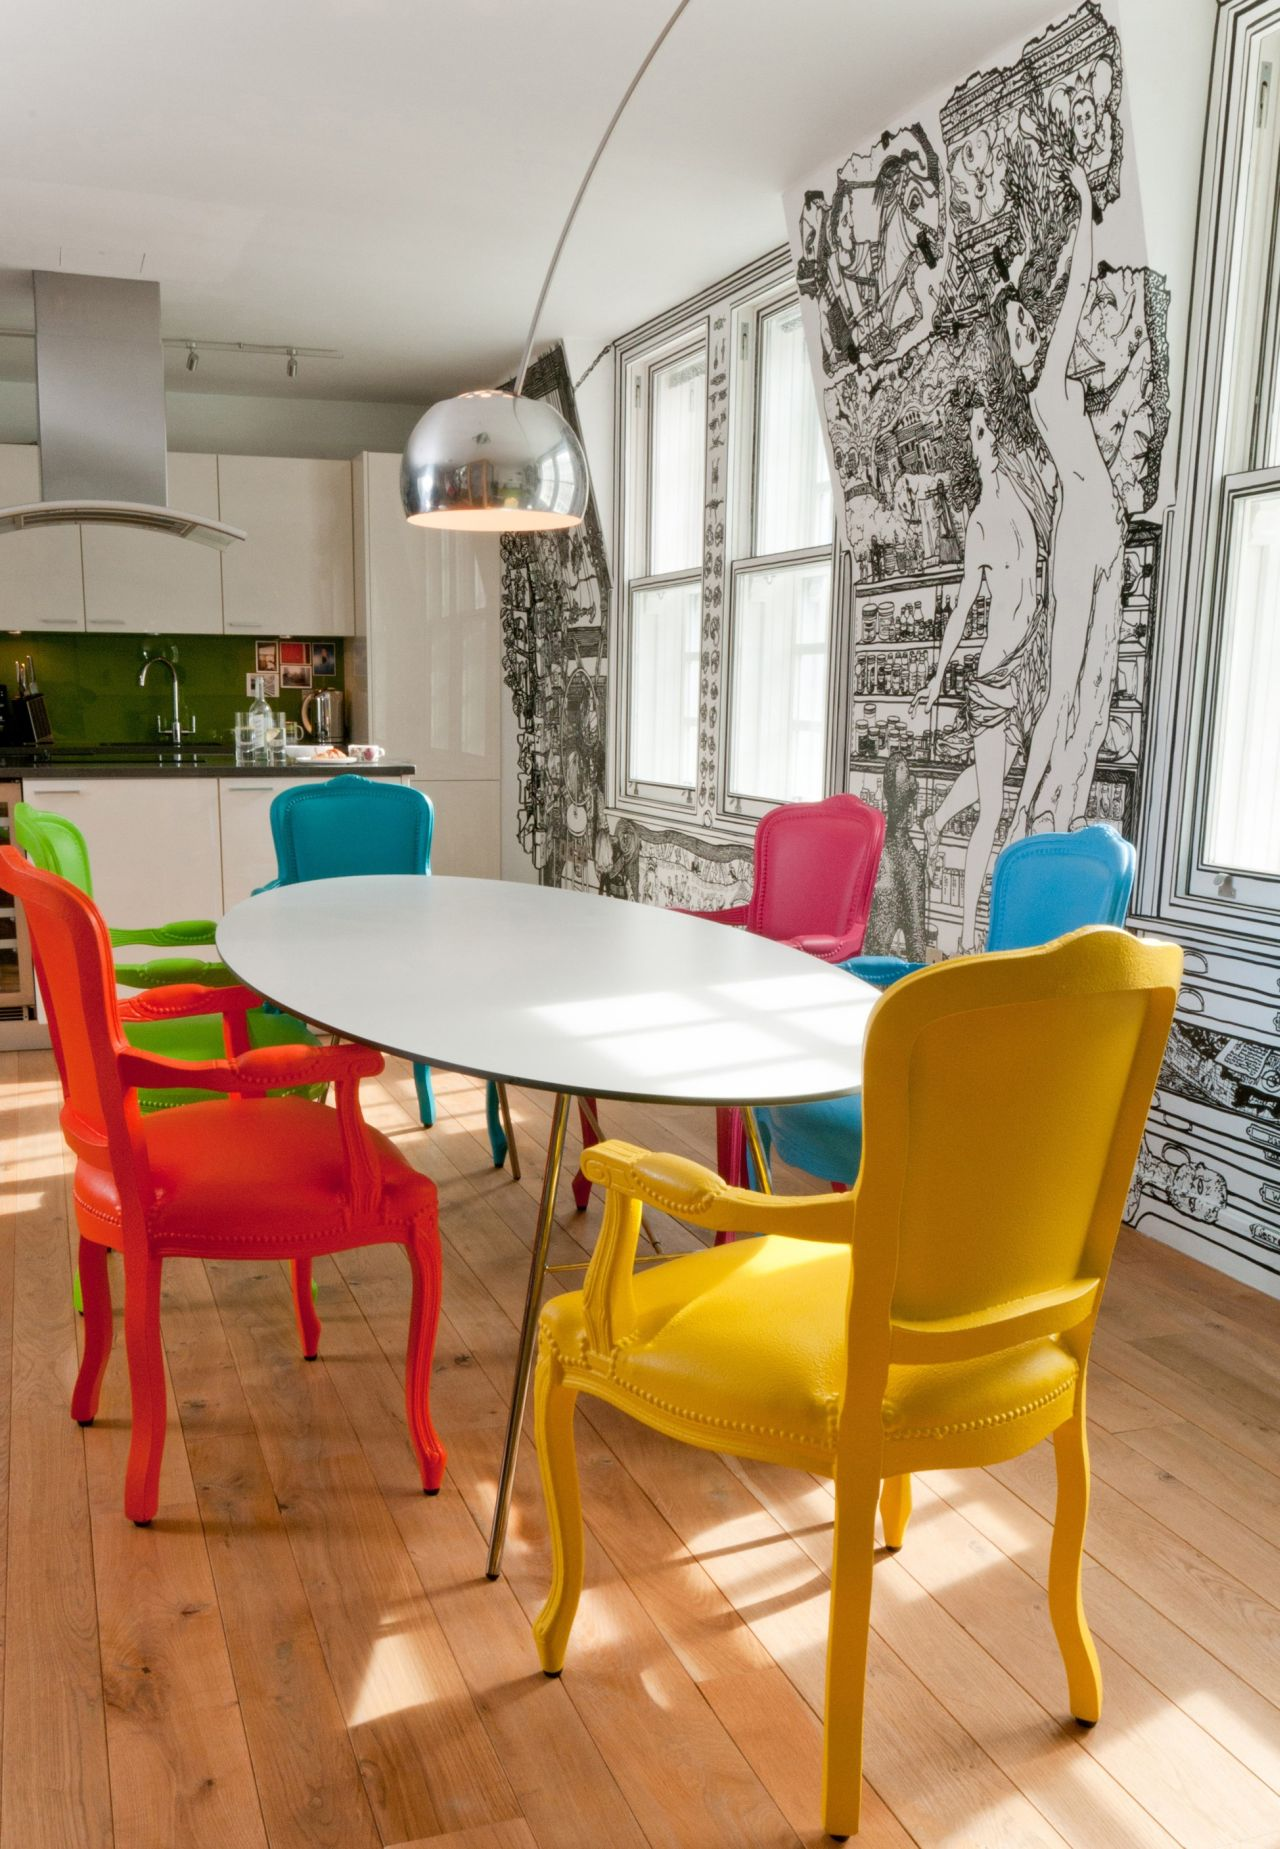 The Refurb Of A Central London Flat Pop Art Design Meets Mural